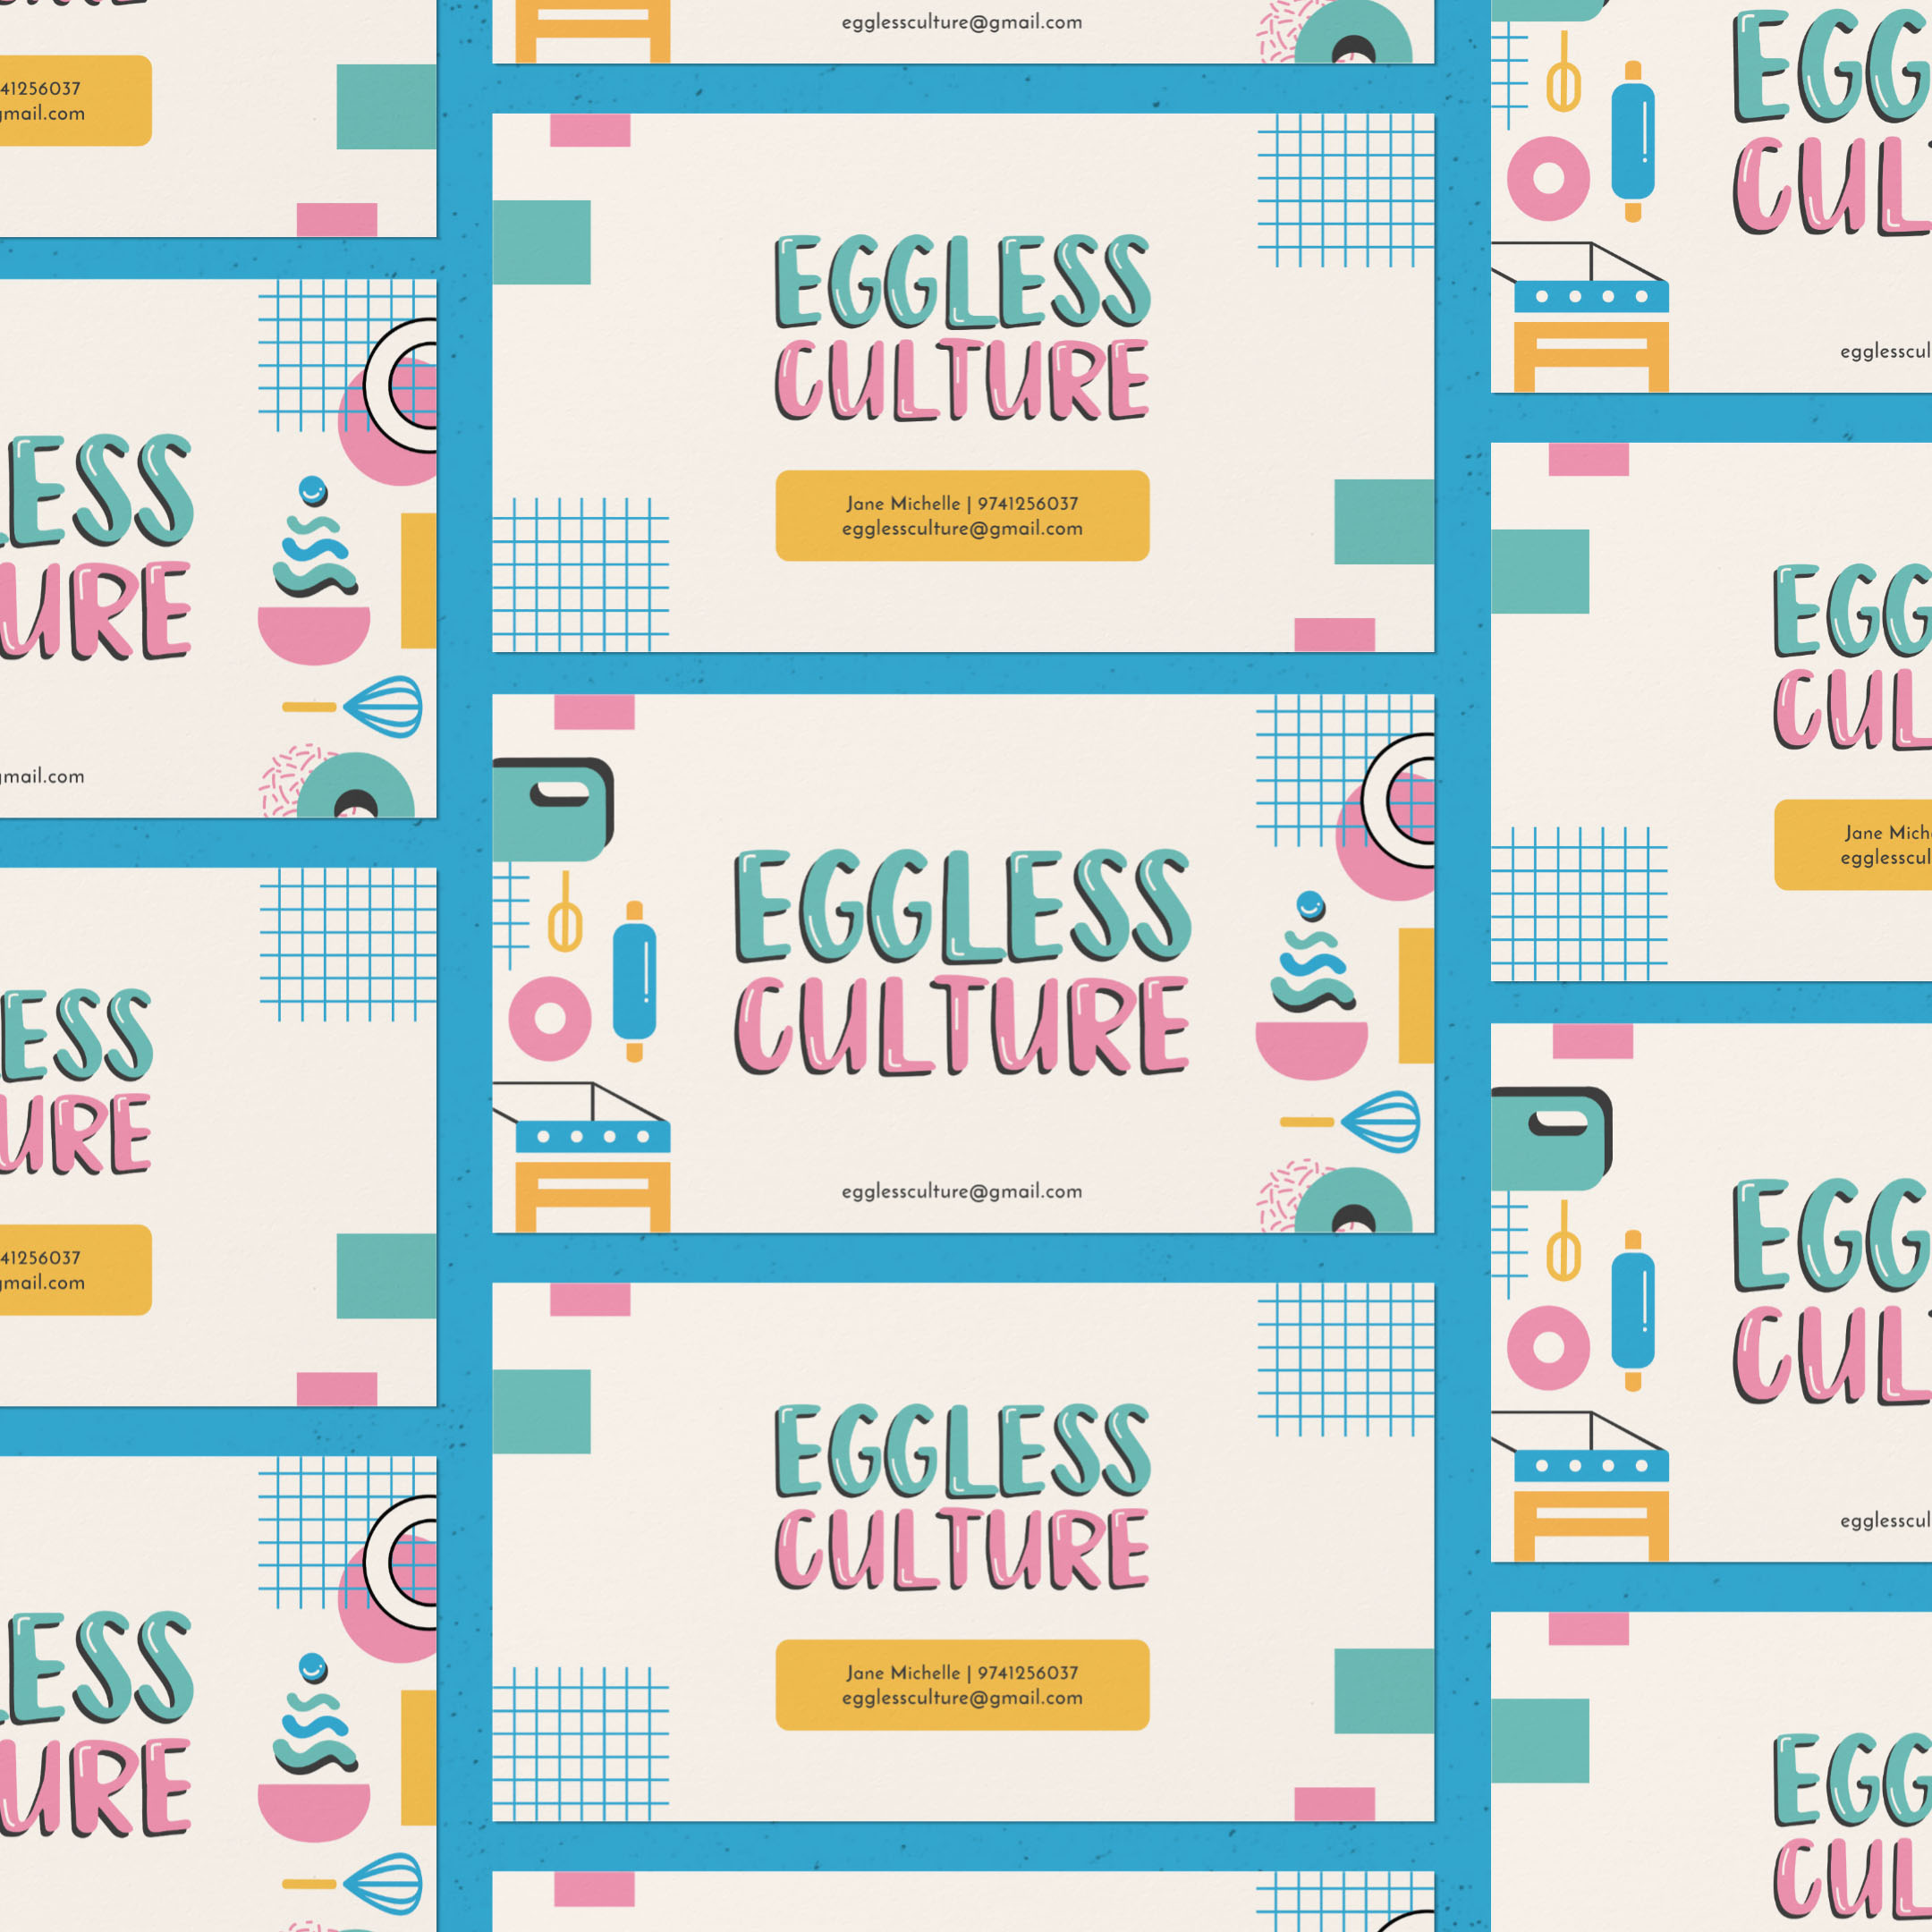 Eggless Culture business cards